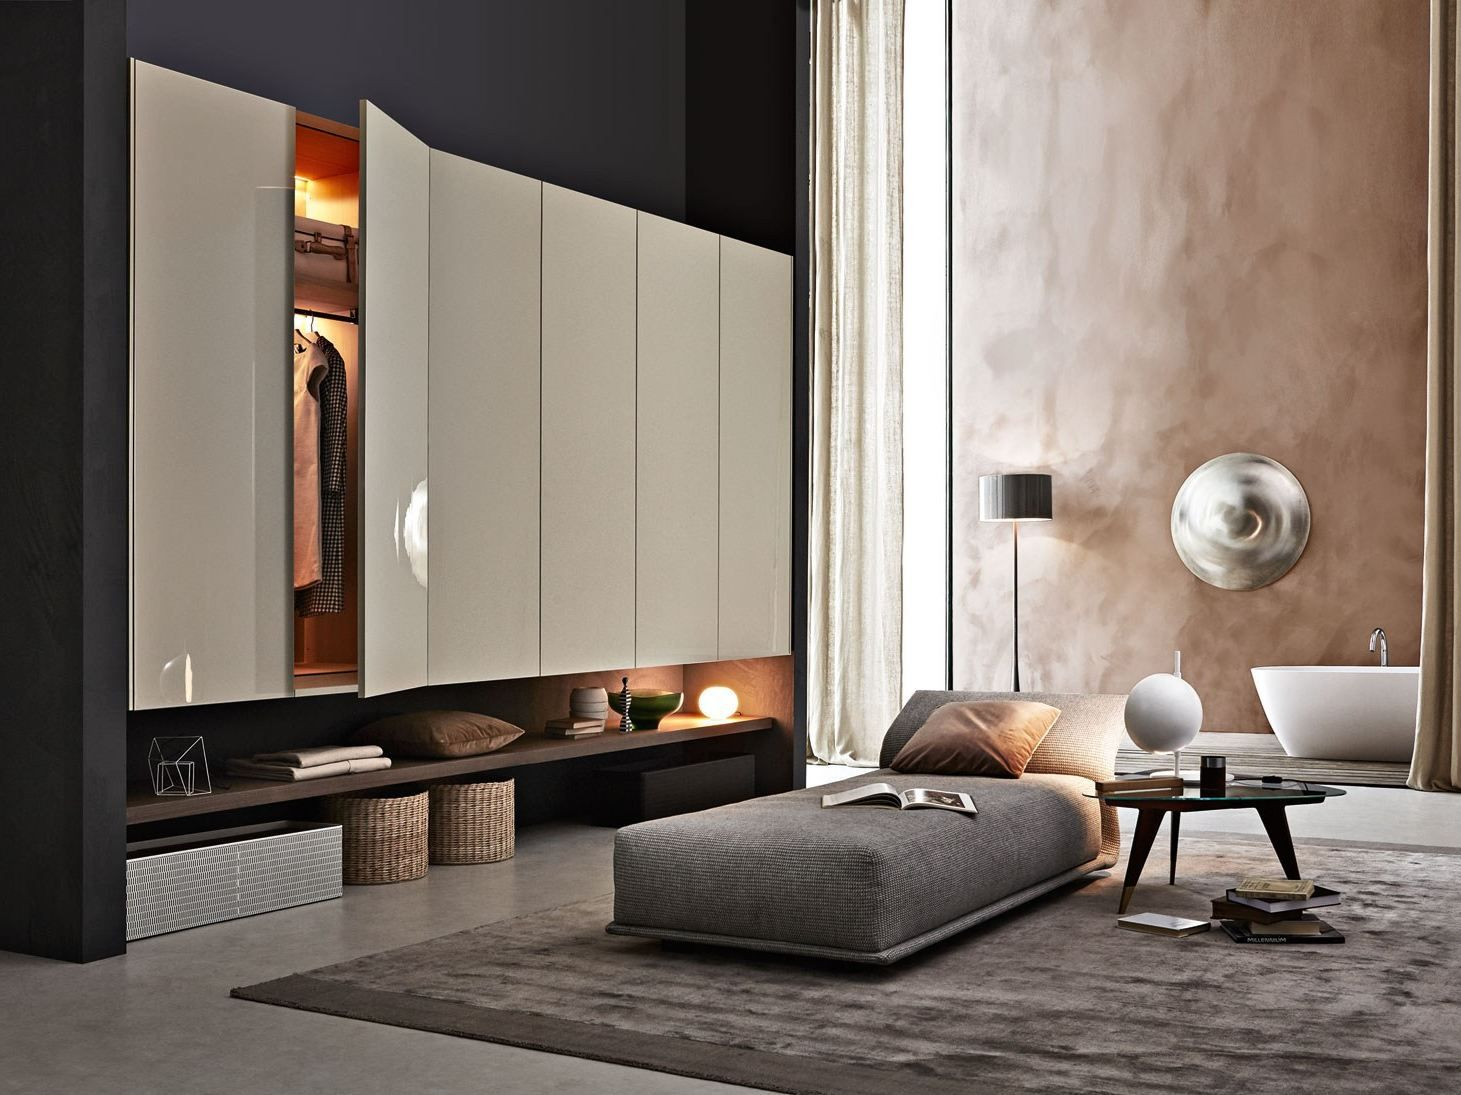 Lacquered wardrobe with drawers GLISS-UP by MOLTENI & C. design ...